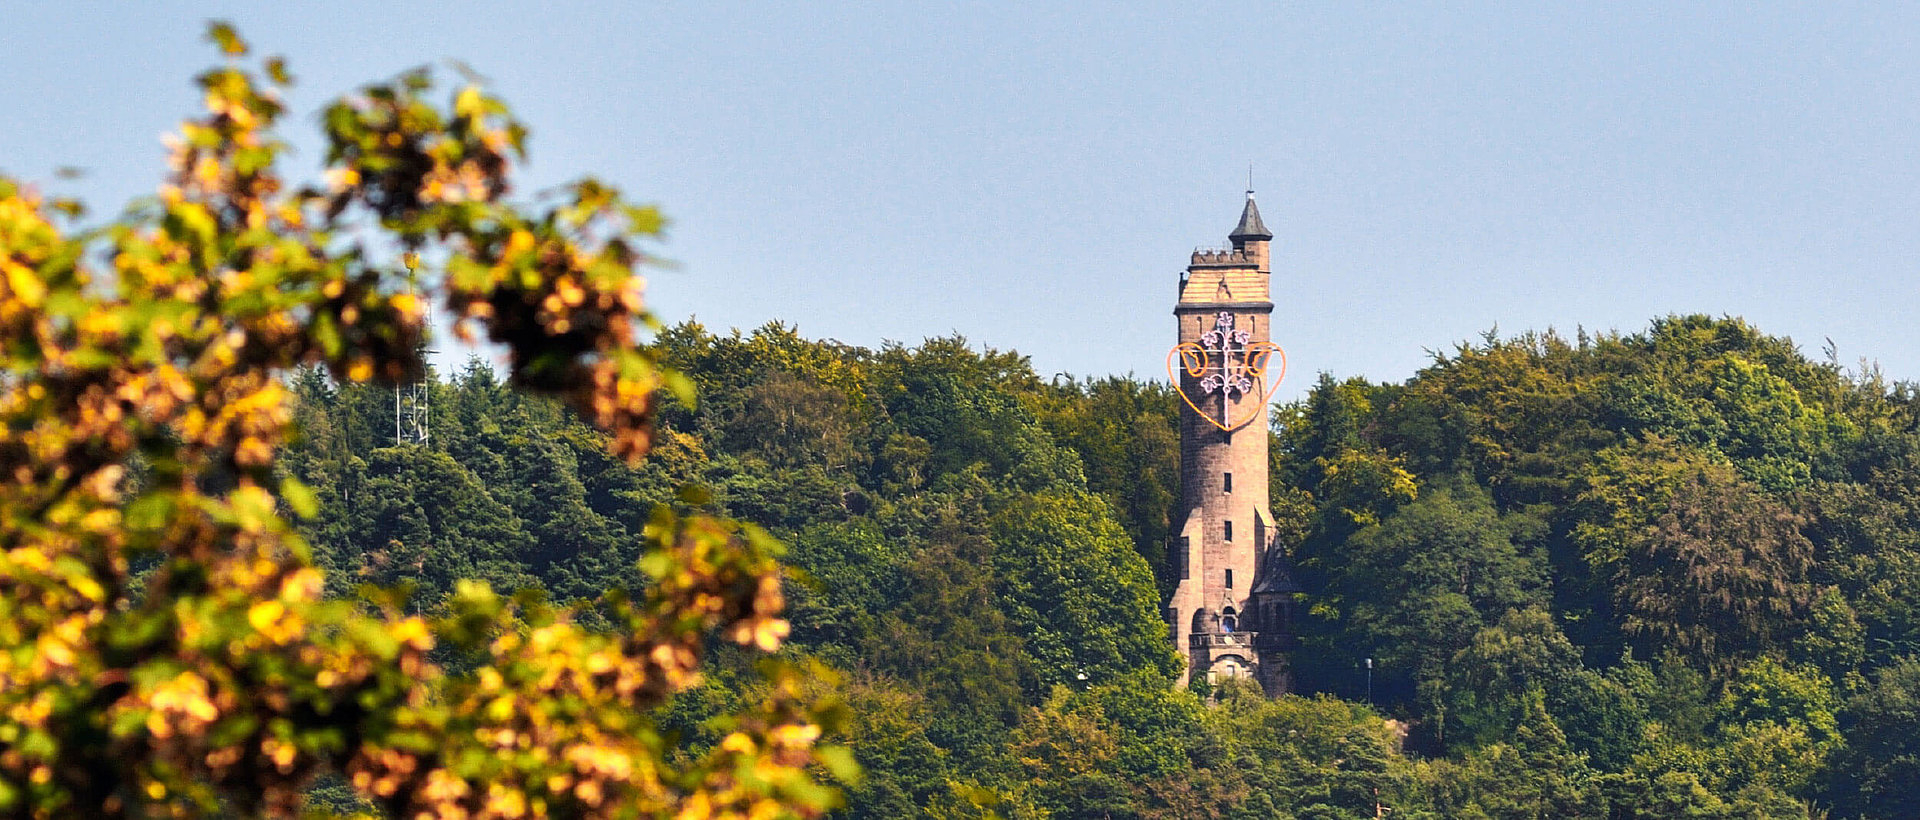 Der Marburger Spiegelslustturm, Fotocredit Georg Kronenberg